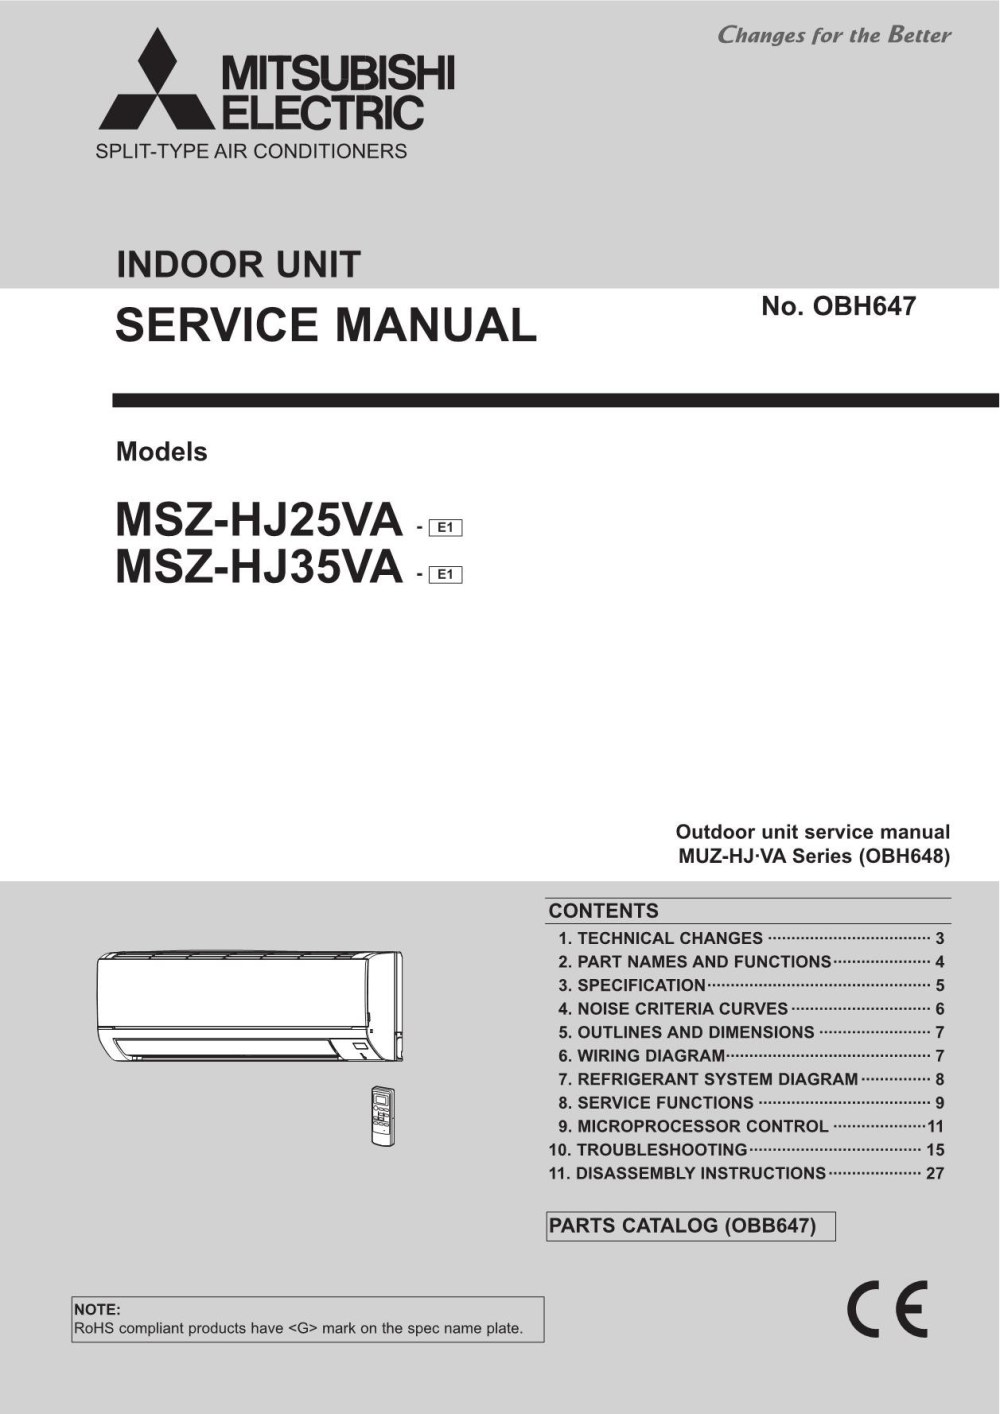 medium resolution of ac mitsubishi obh647 pages 1 32 text version fliphtml5ac mitsubishi obh647